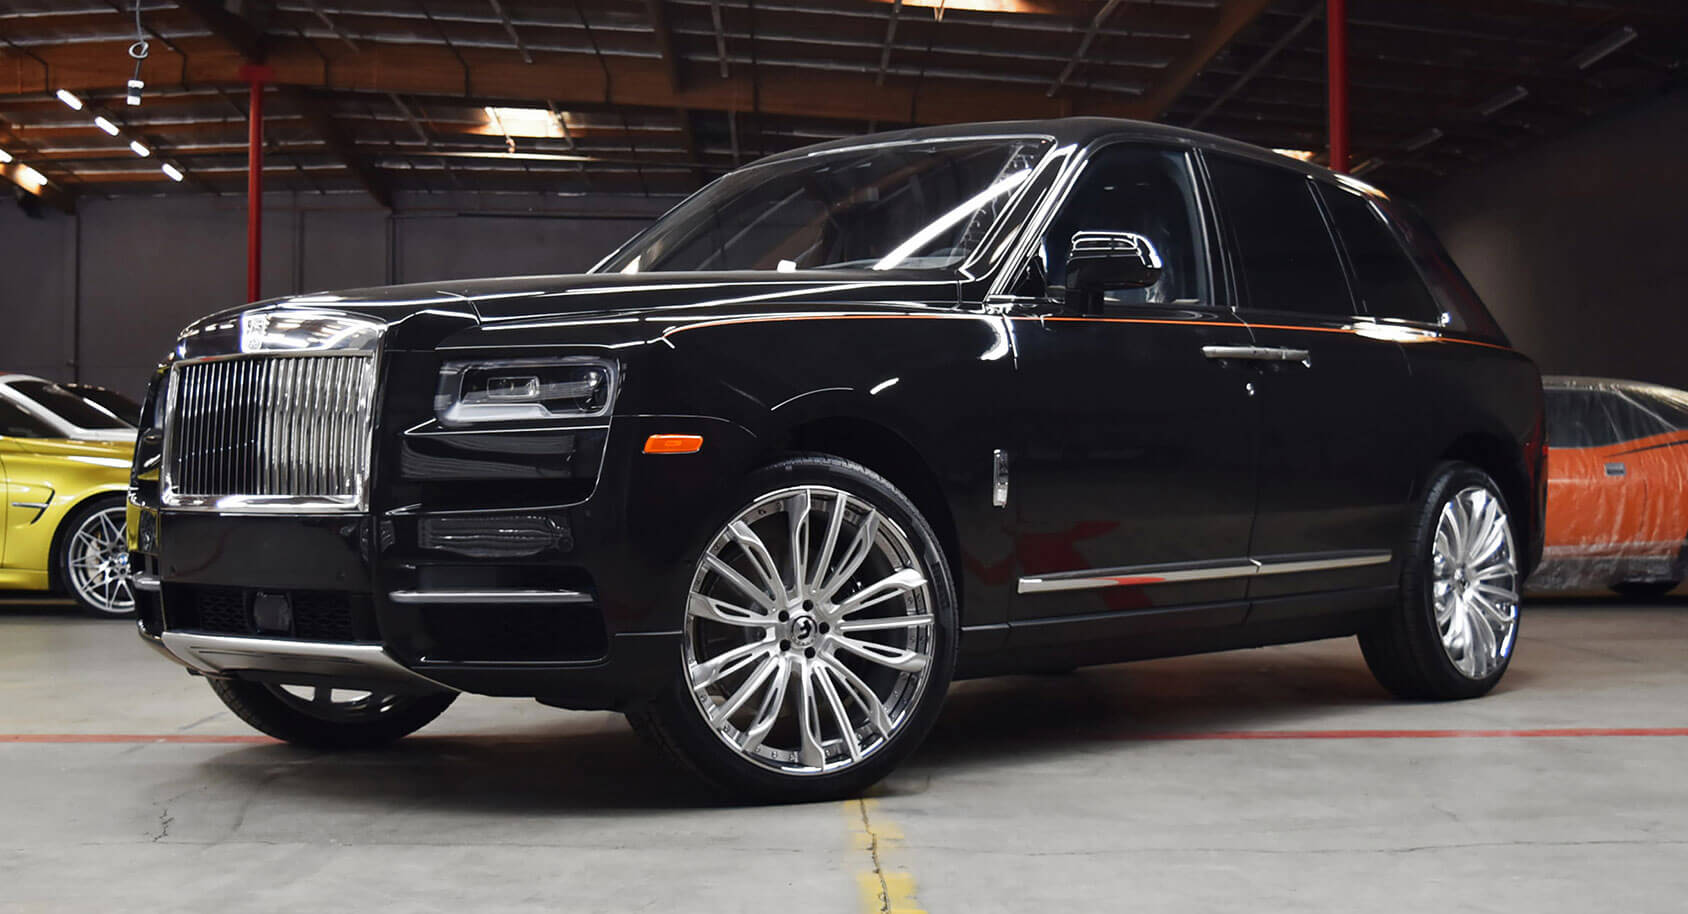 Rolls Royce Cullinan Is Prime Real Estate For Alloy Wheel